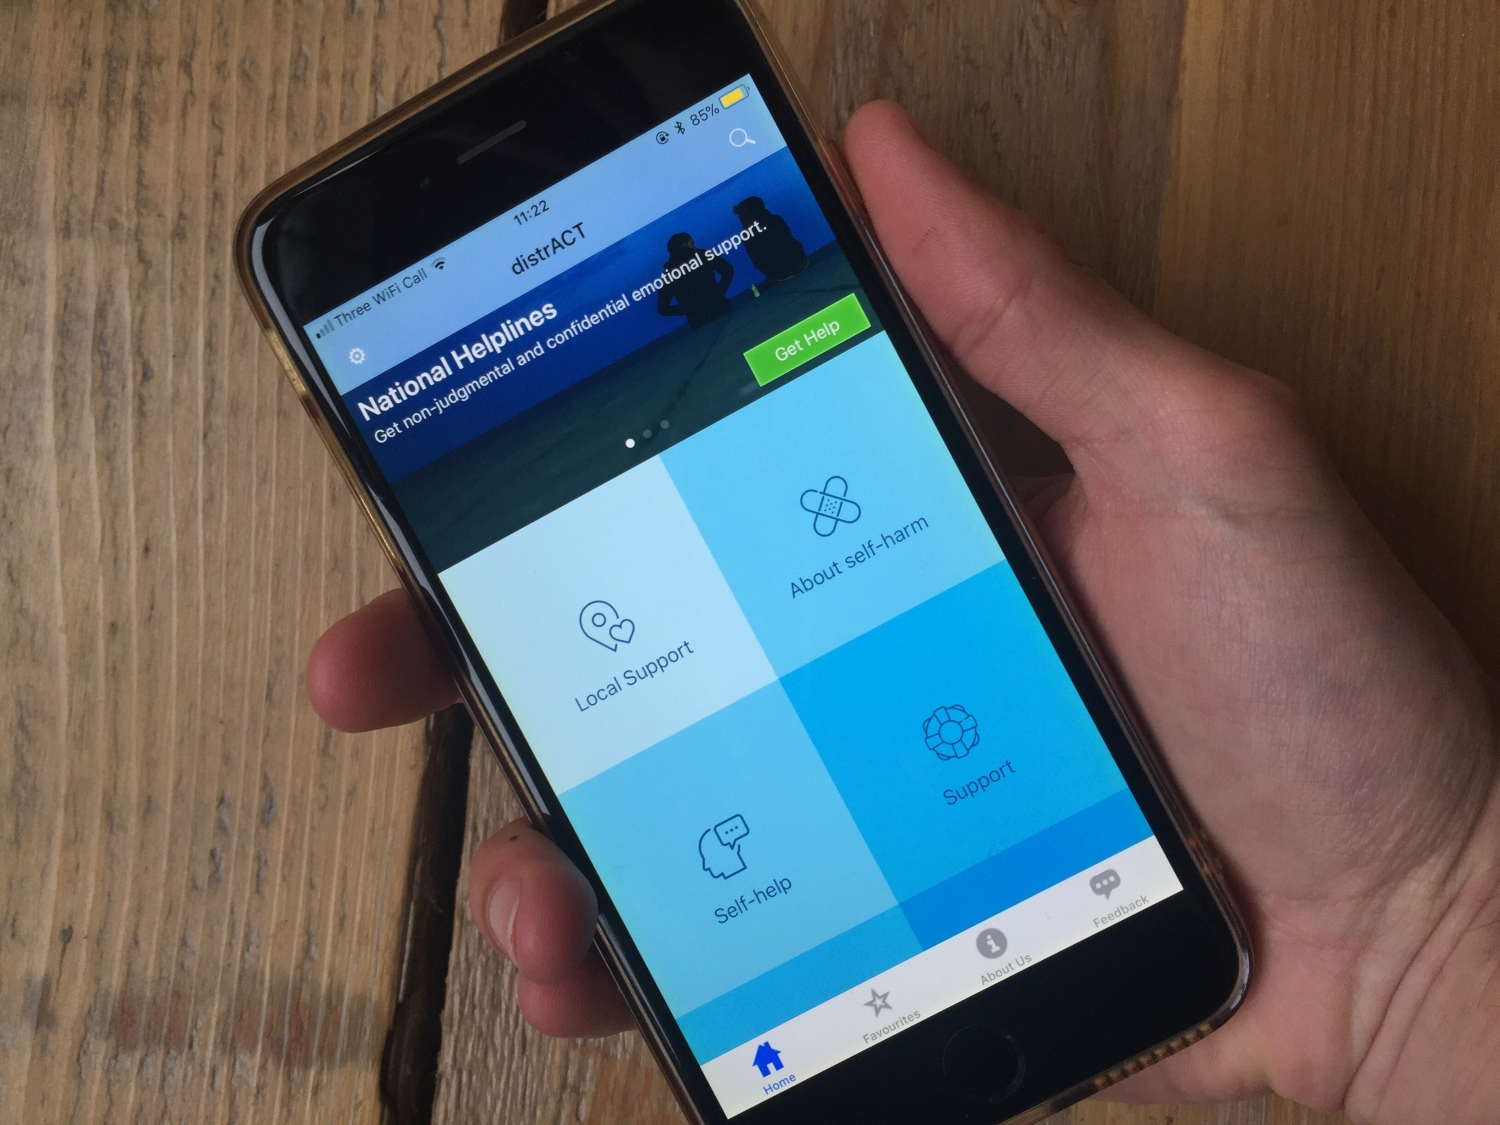 Bristol developed self-harm support and suicide prevention app gains place on NHS Apps Library